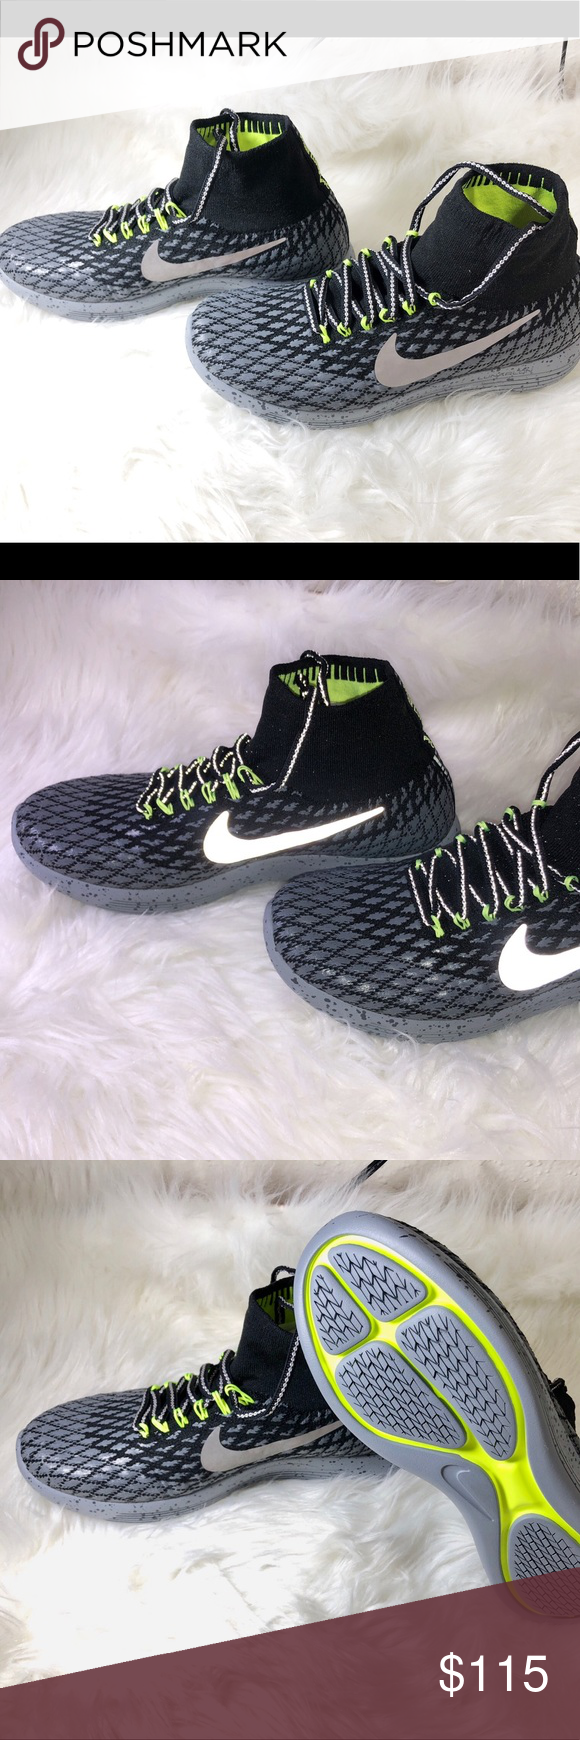 7039e30576c4 Womens lunarepic flyknit sh New lunarepic flynic Retail for  200+ tax H2o  repel 💗 Nike Shoes Athletic Shoes